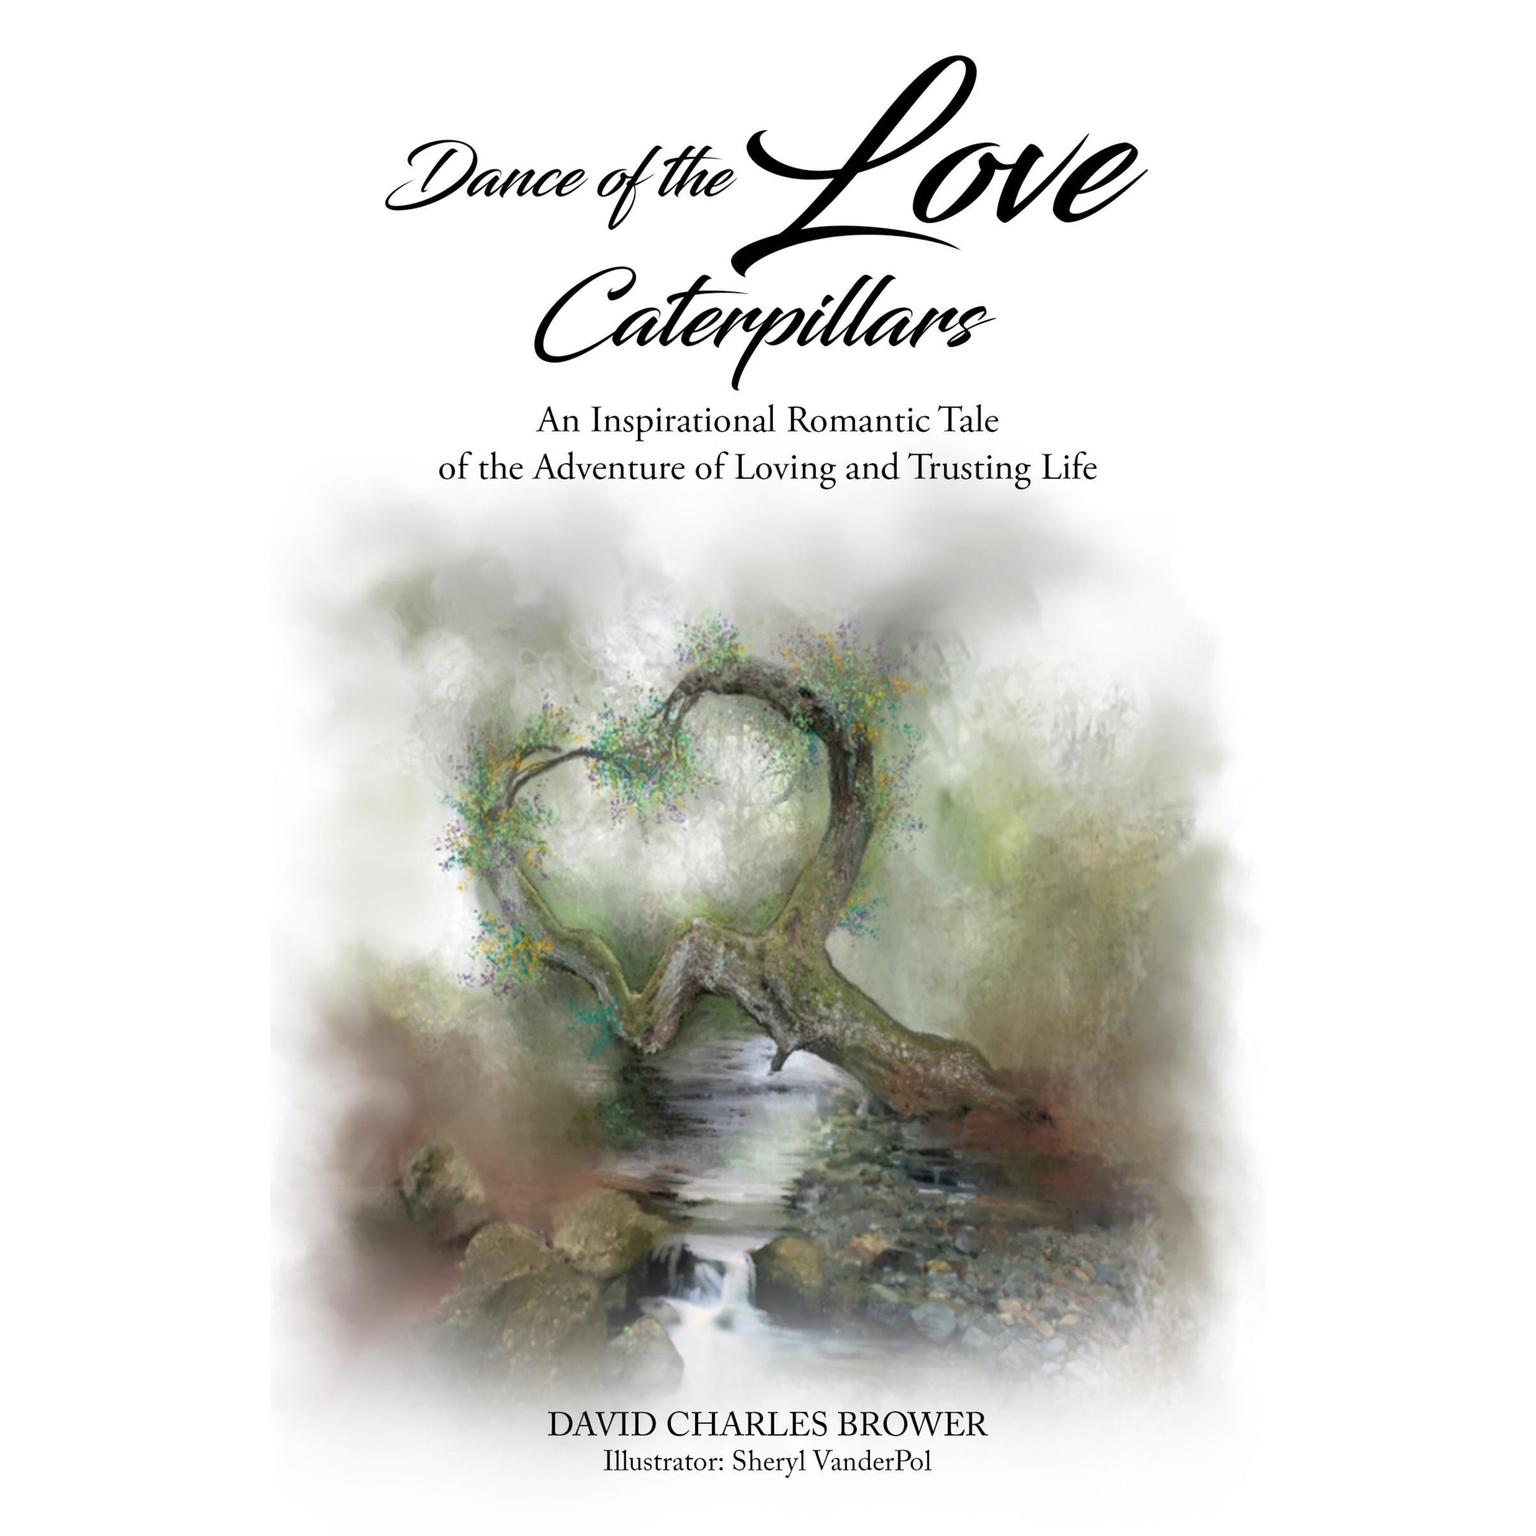 Dance of the Love Caterpillars: An Inspirational Romantic Tale of the Adventure of Loving and Trusting Life Audiobook, by David Charles Brower